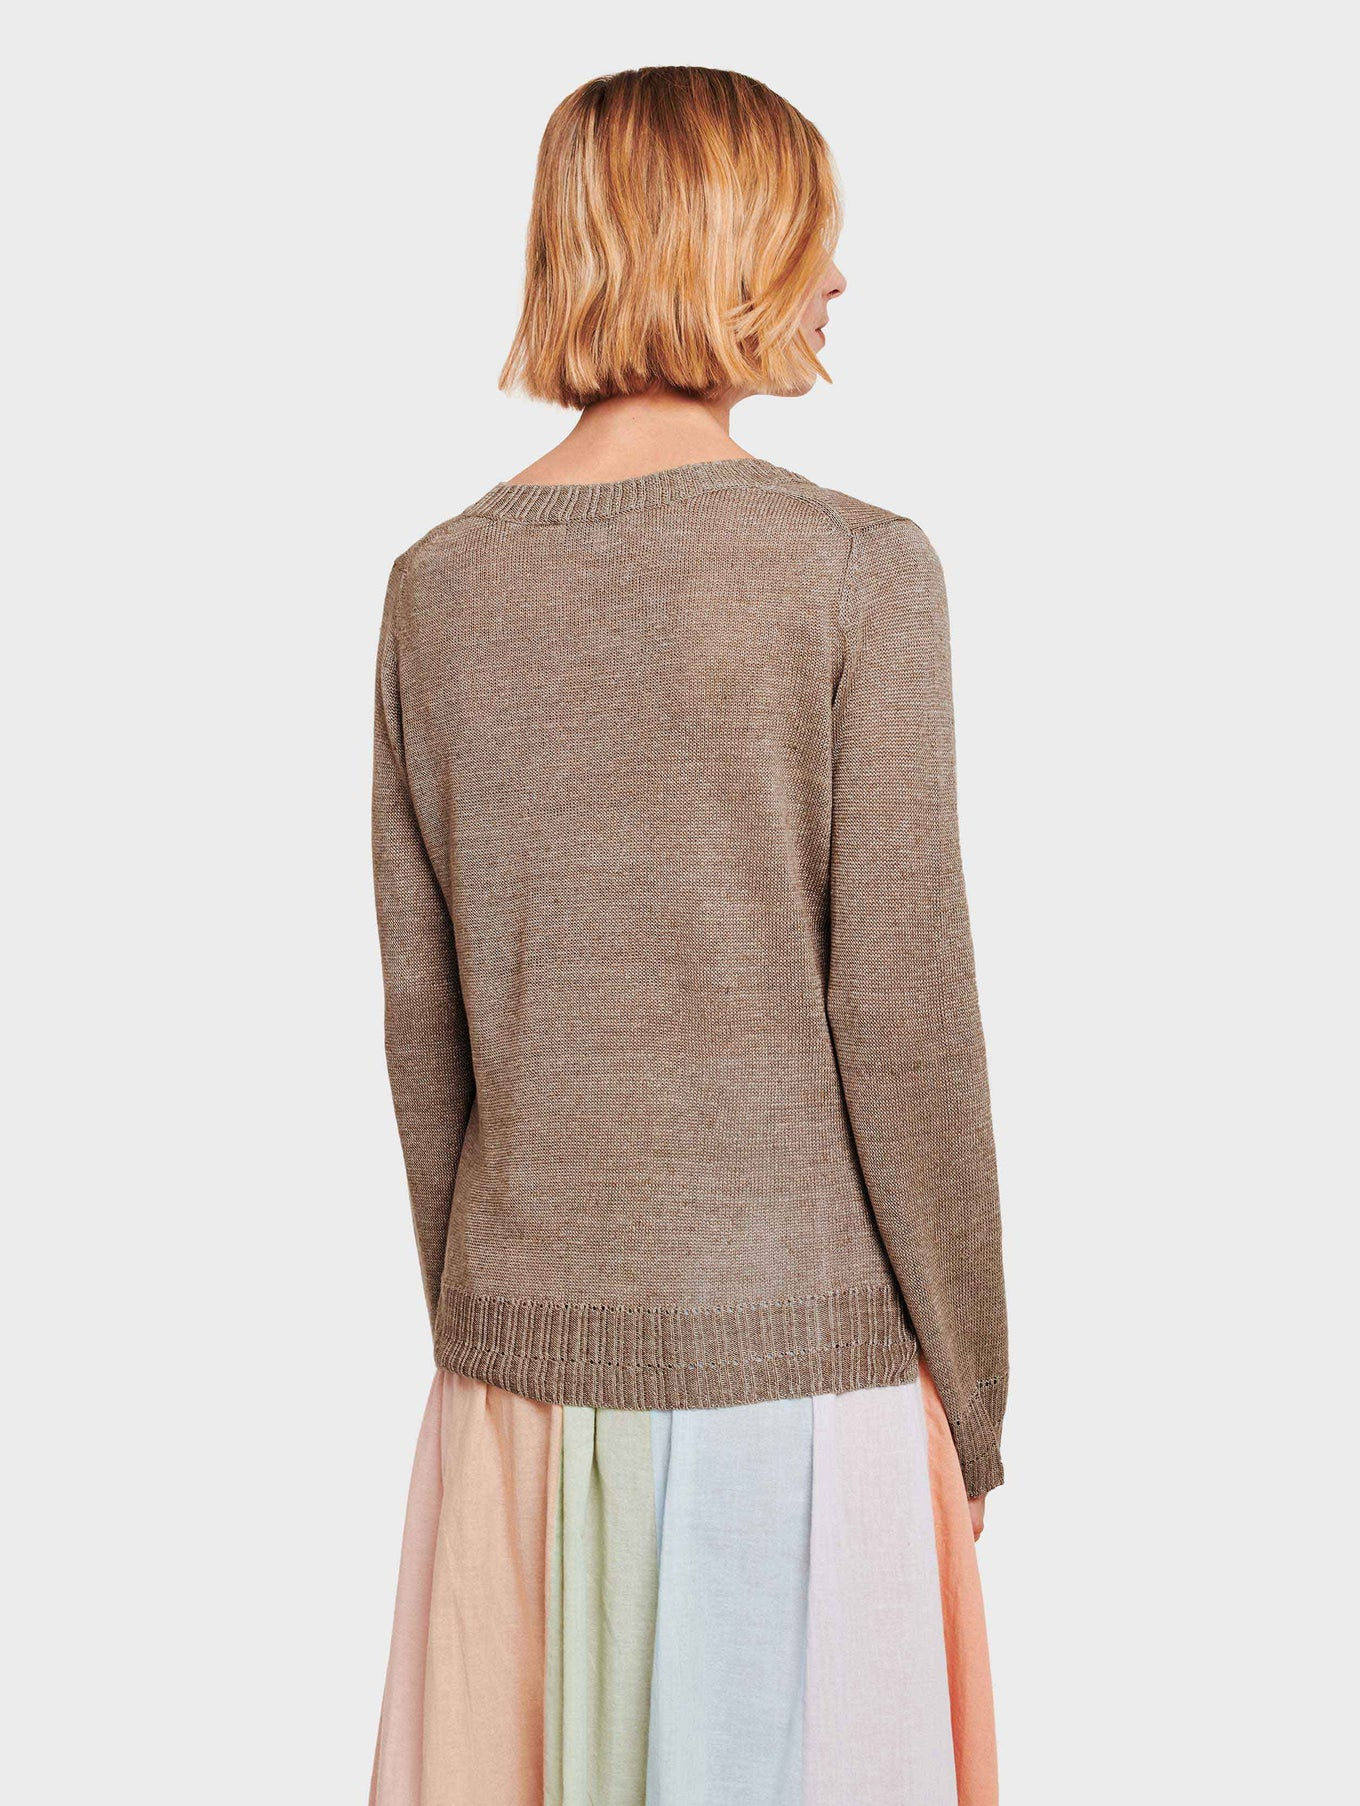 Linen Pointelle Rib V Neck - Coffee - Image 3